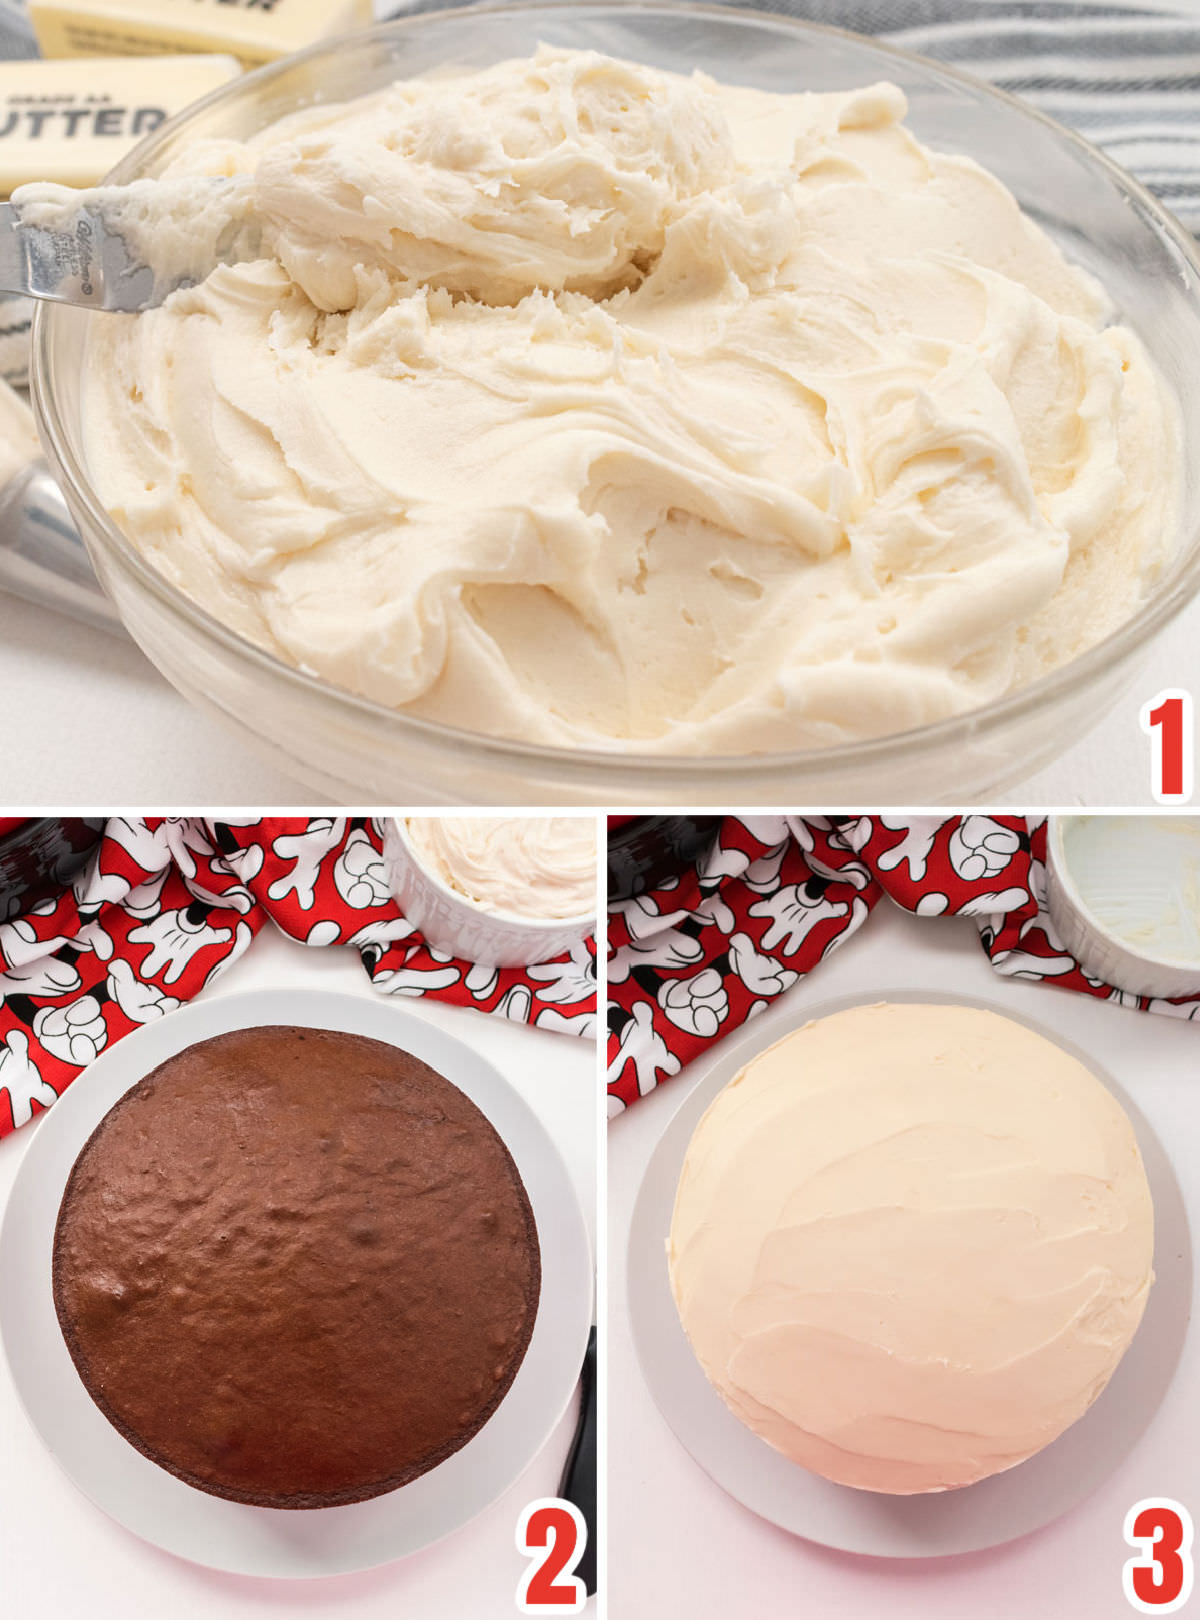 Collage image showing the steps for preparing to decorate the cake including making the frosting, making the cake and frosting the cake.